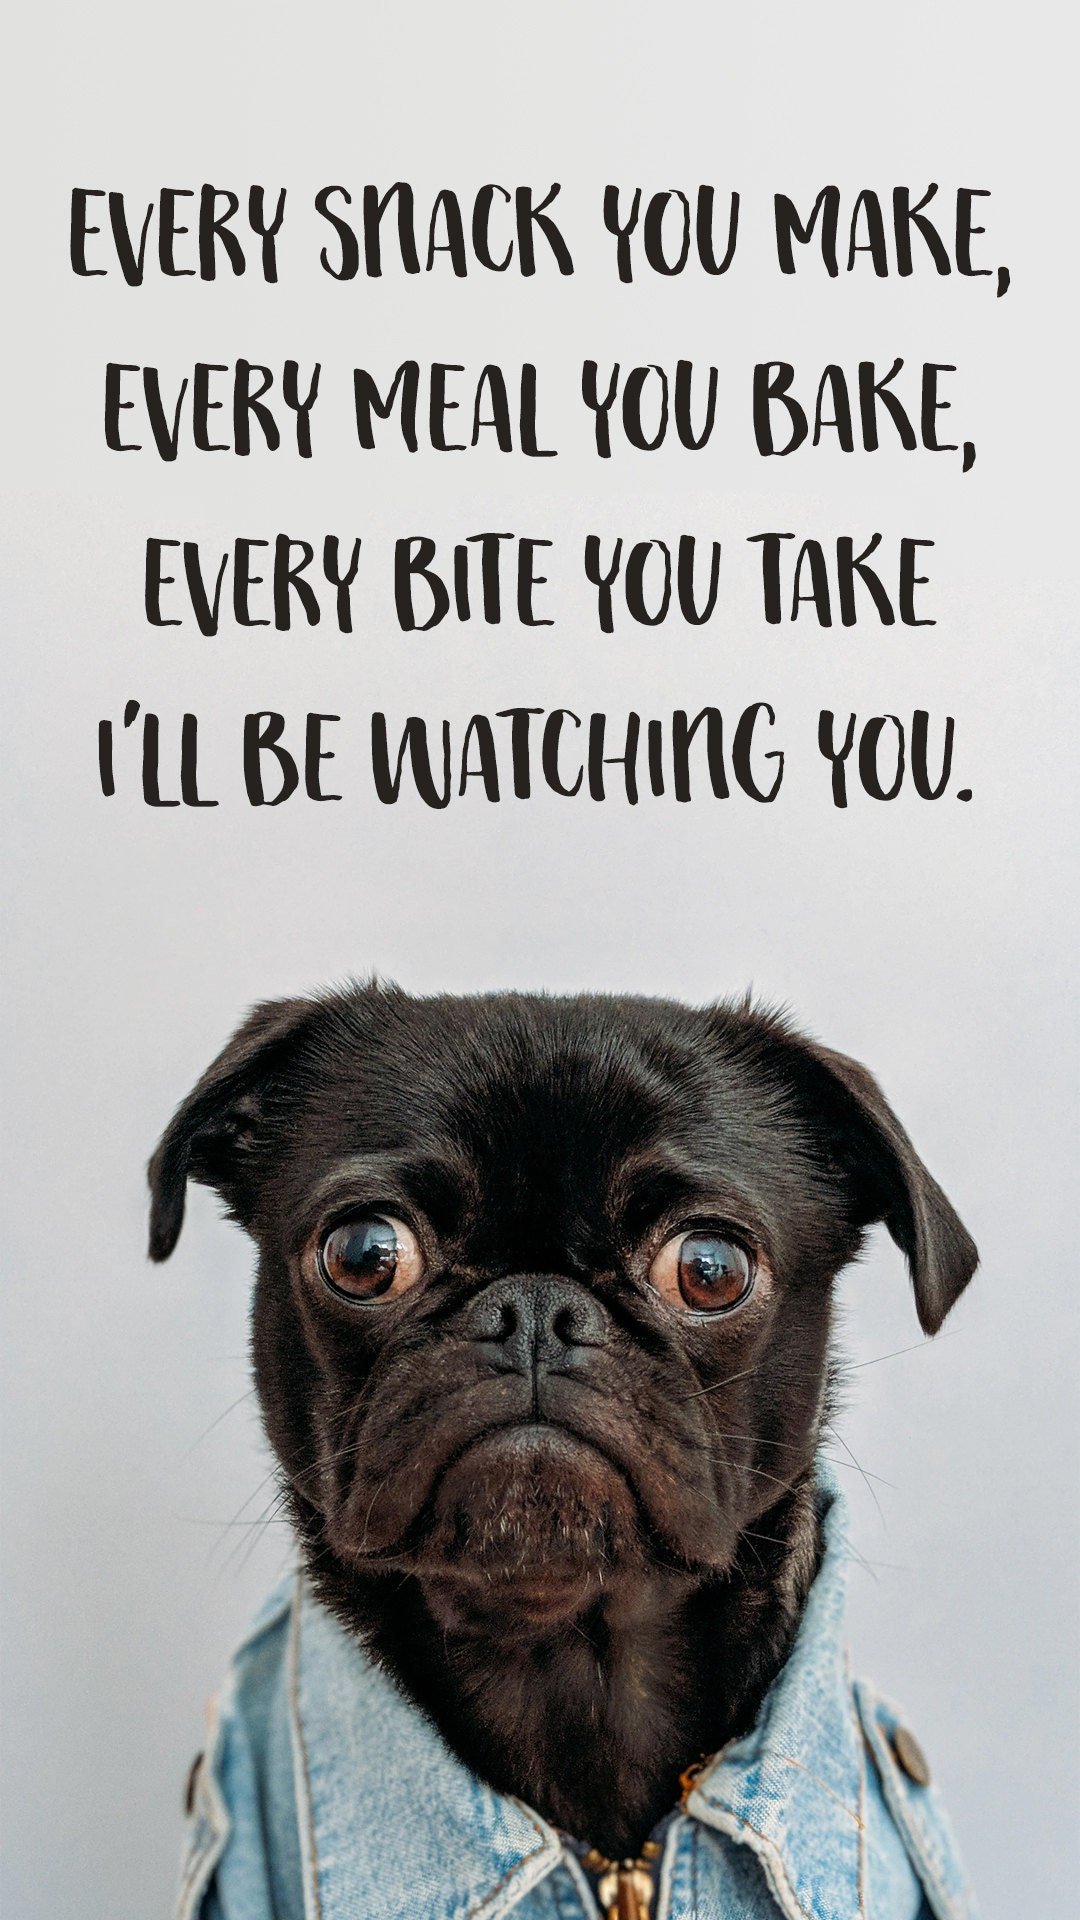 Every snack you make every meal you bake every bite you take Ill be watching you.